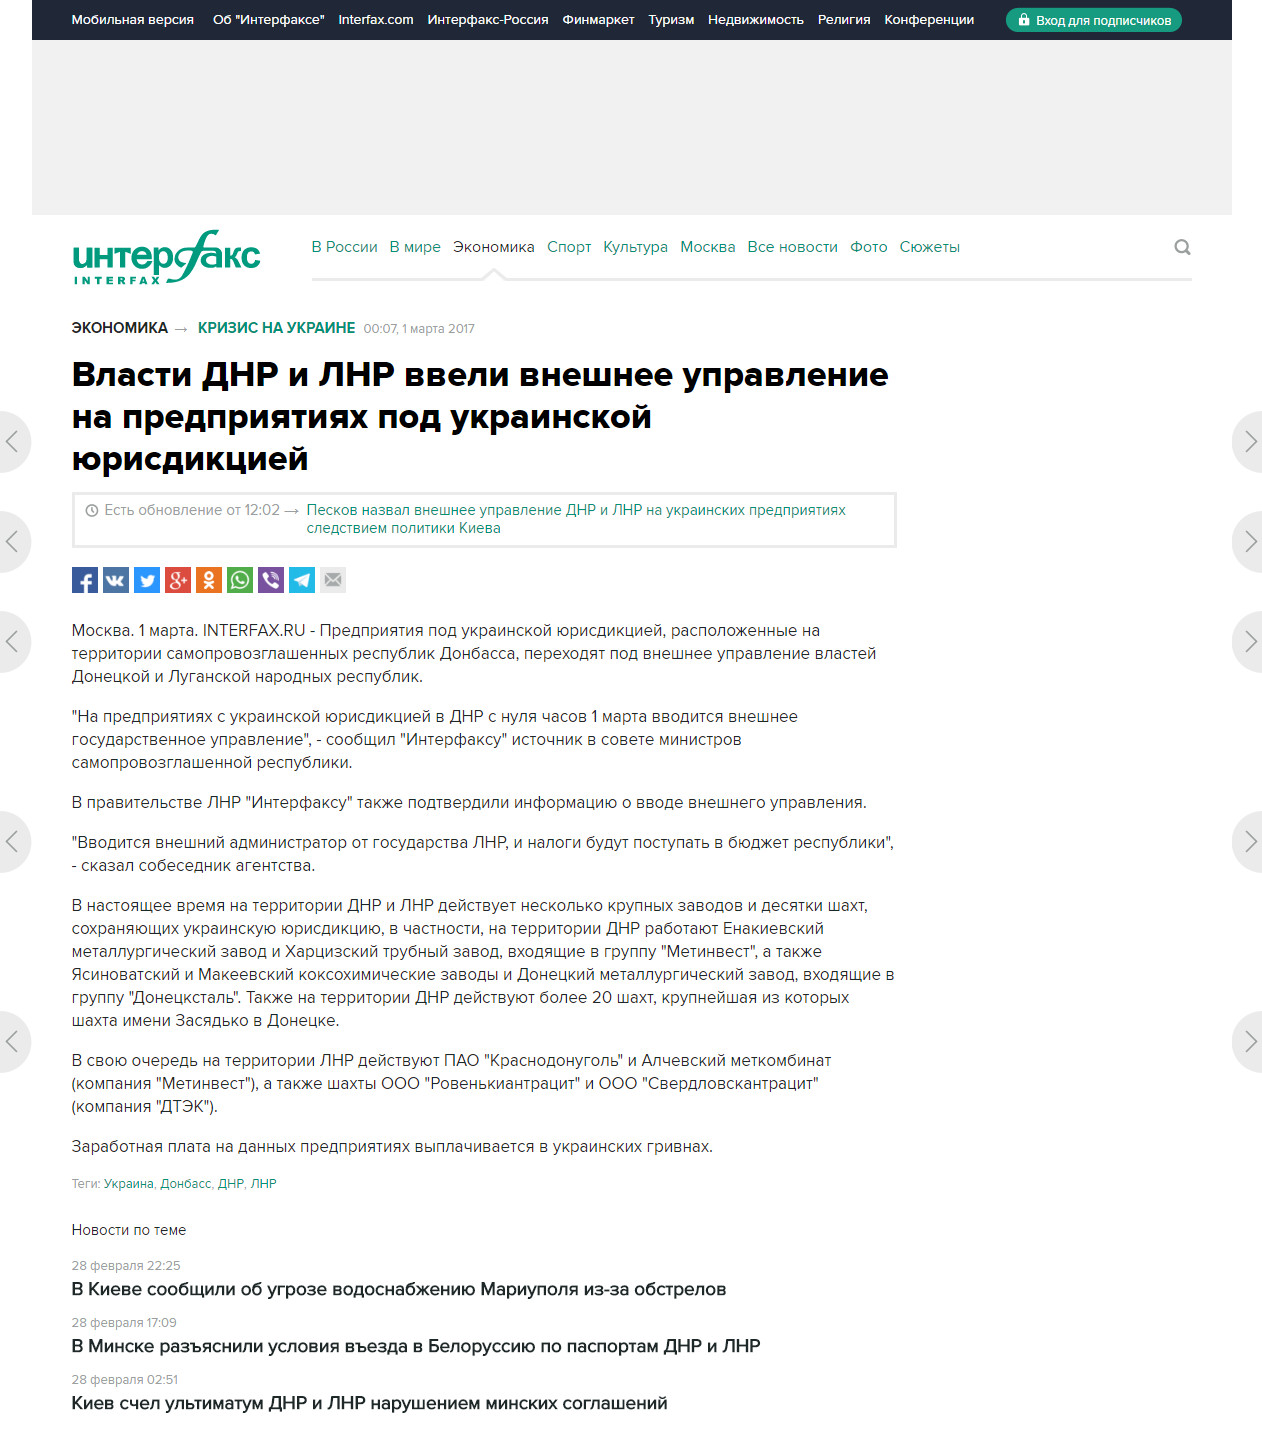 http://www.interfax.ru/business/551787